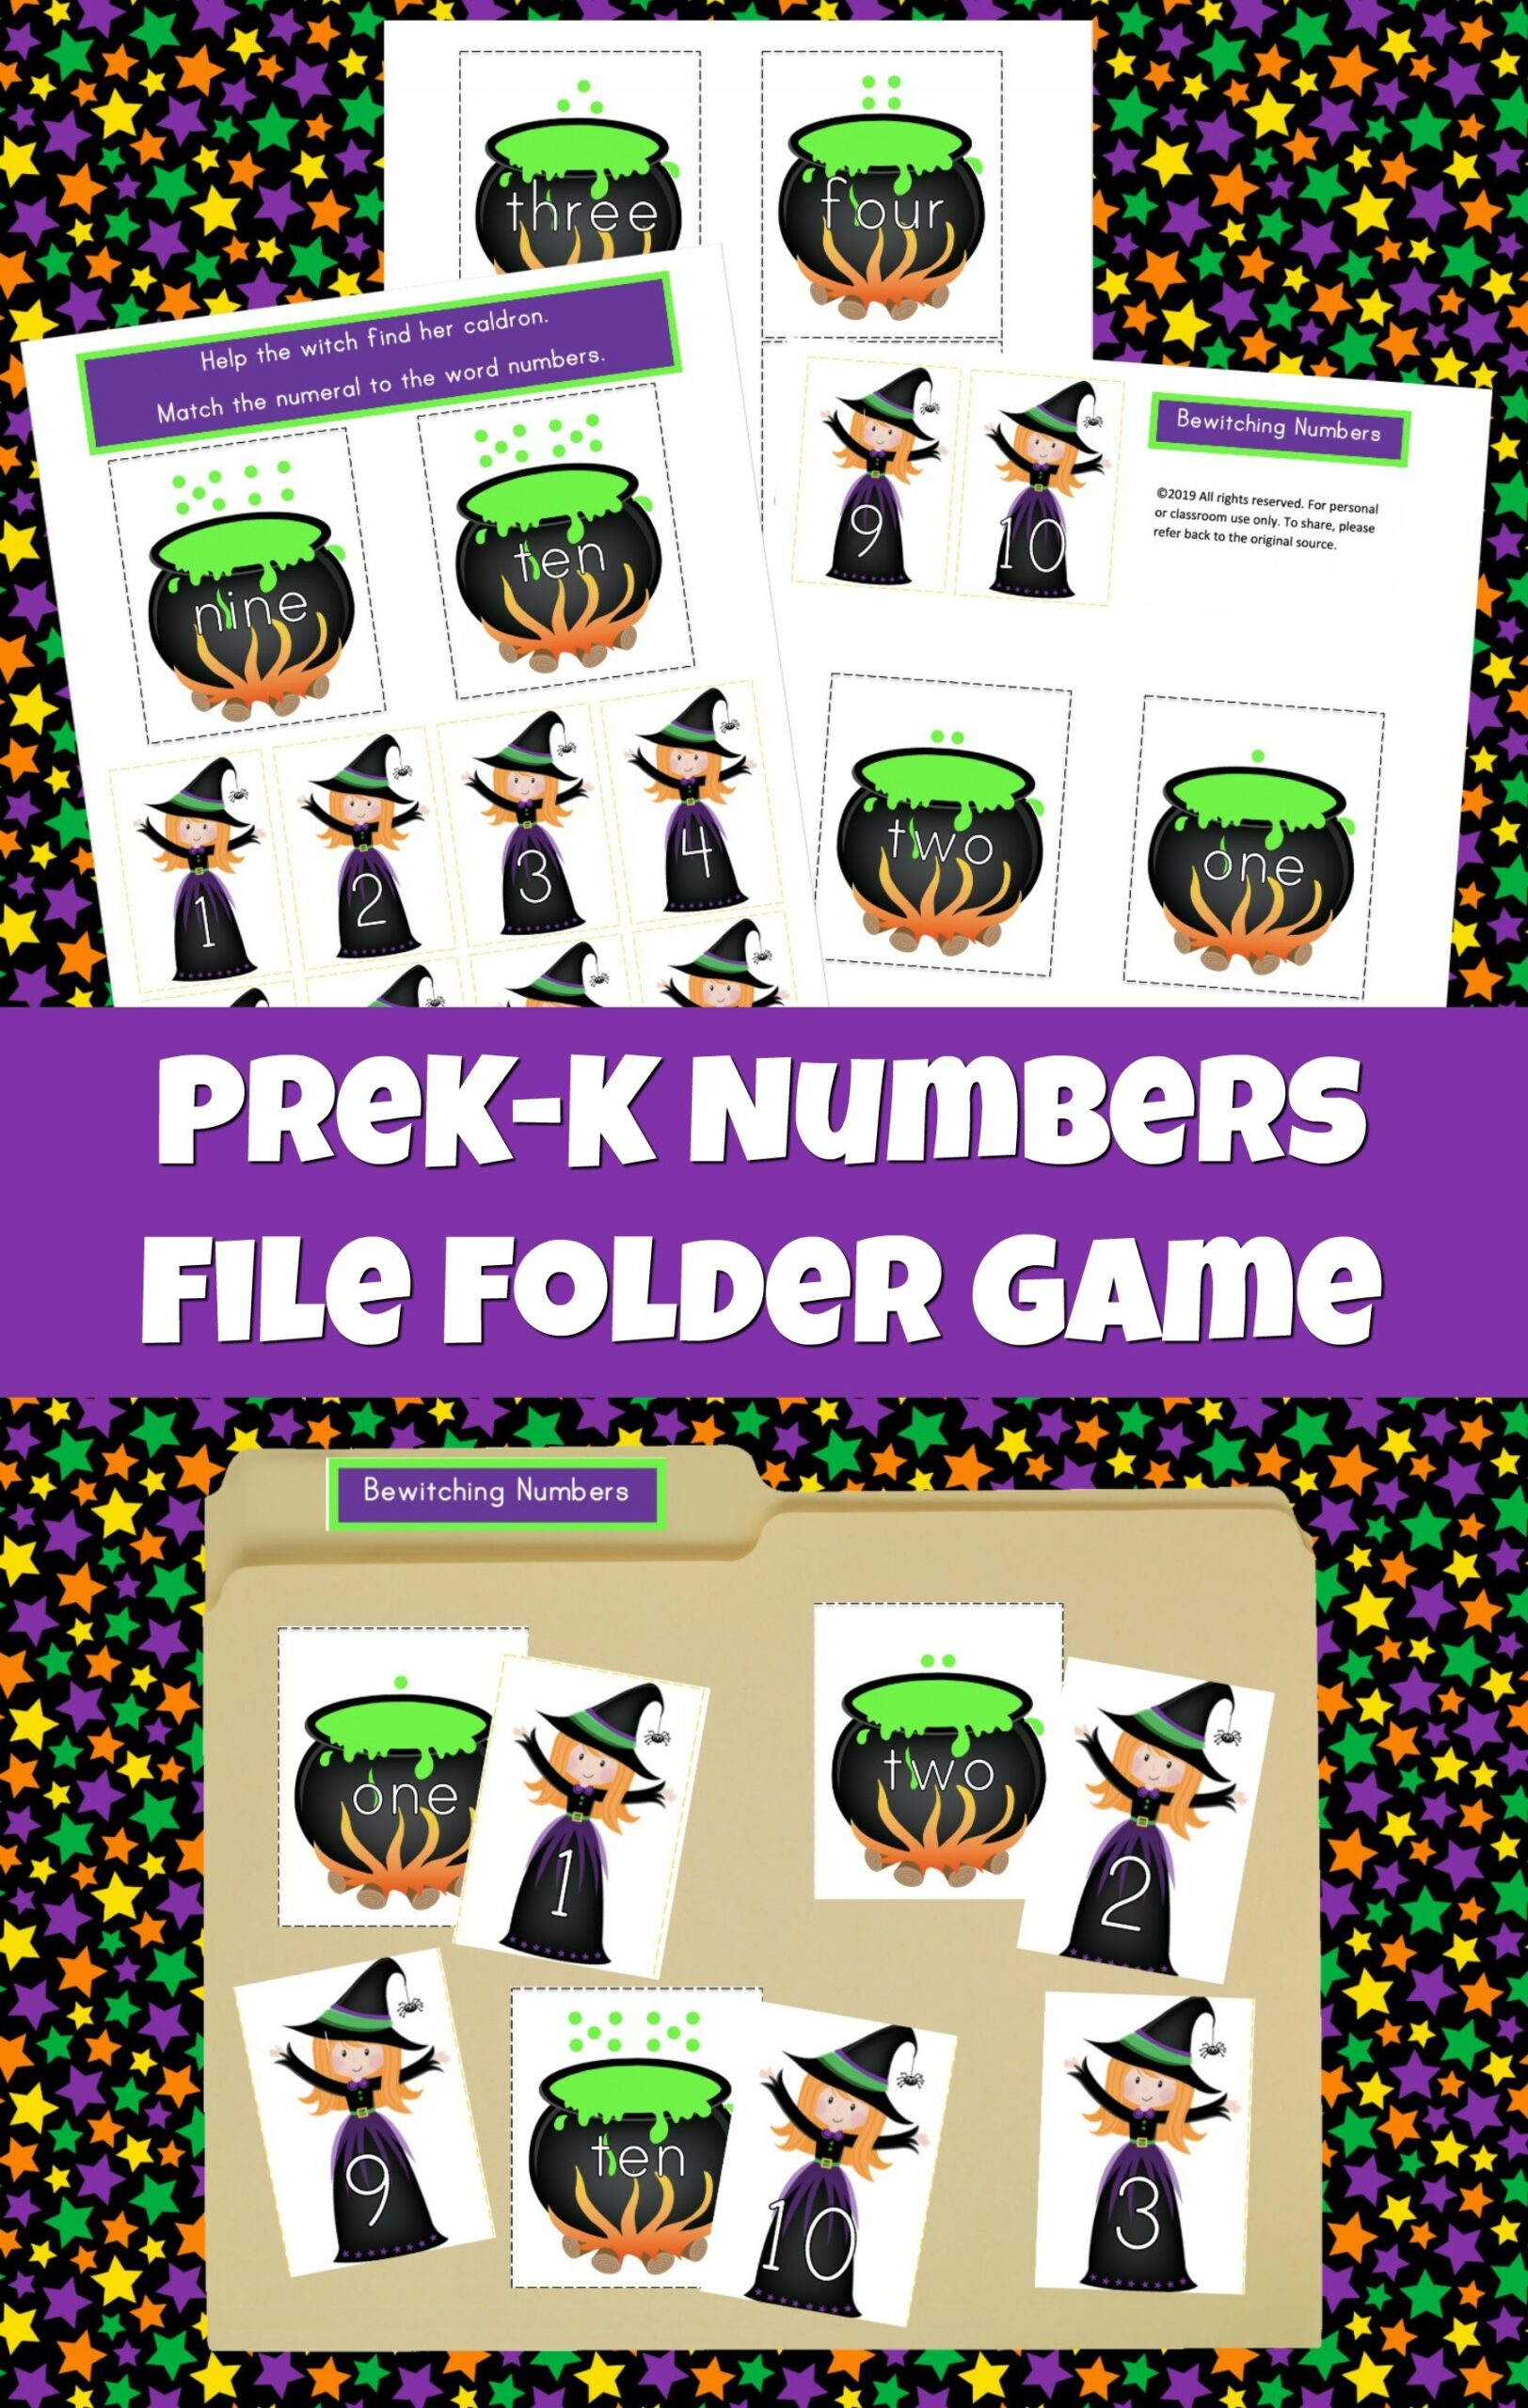 have some fun with your kids this Halloween with this printable ffg